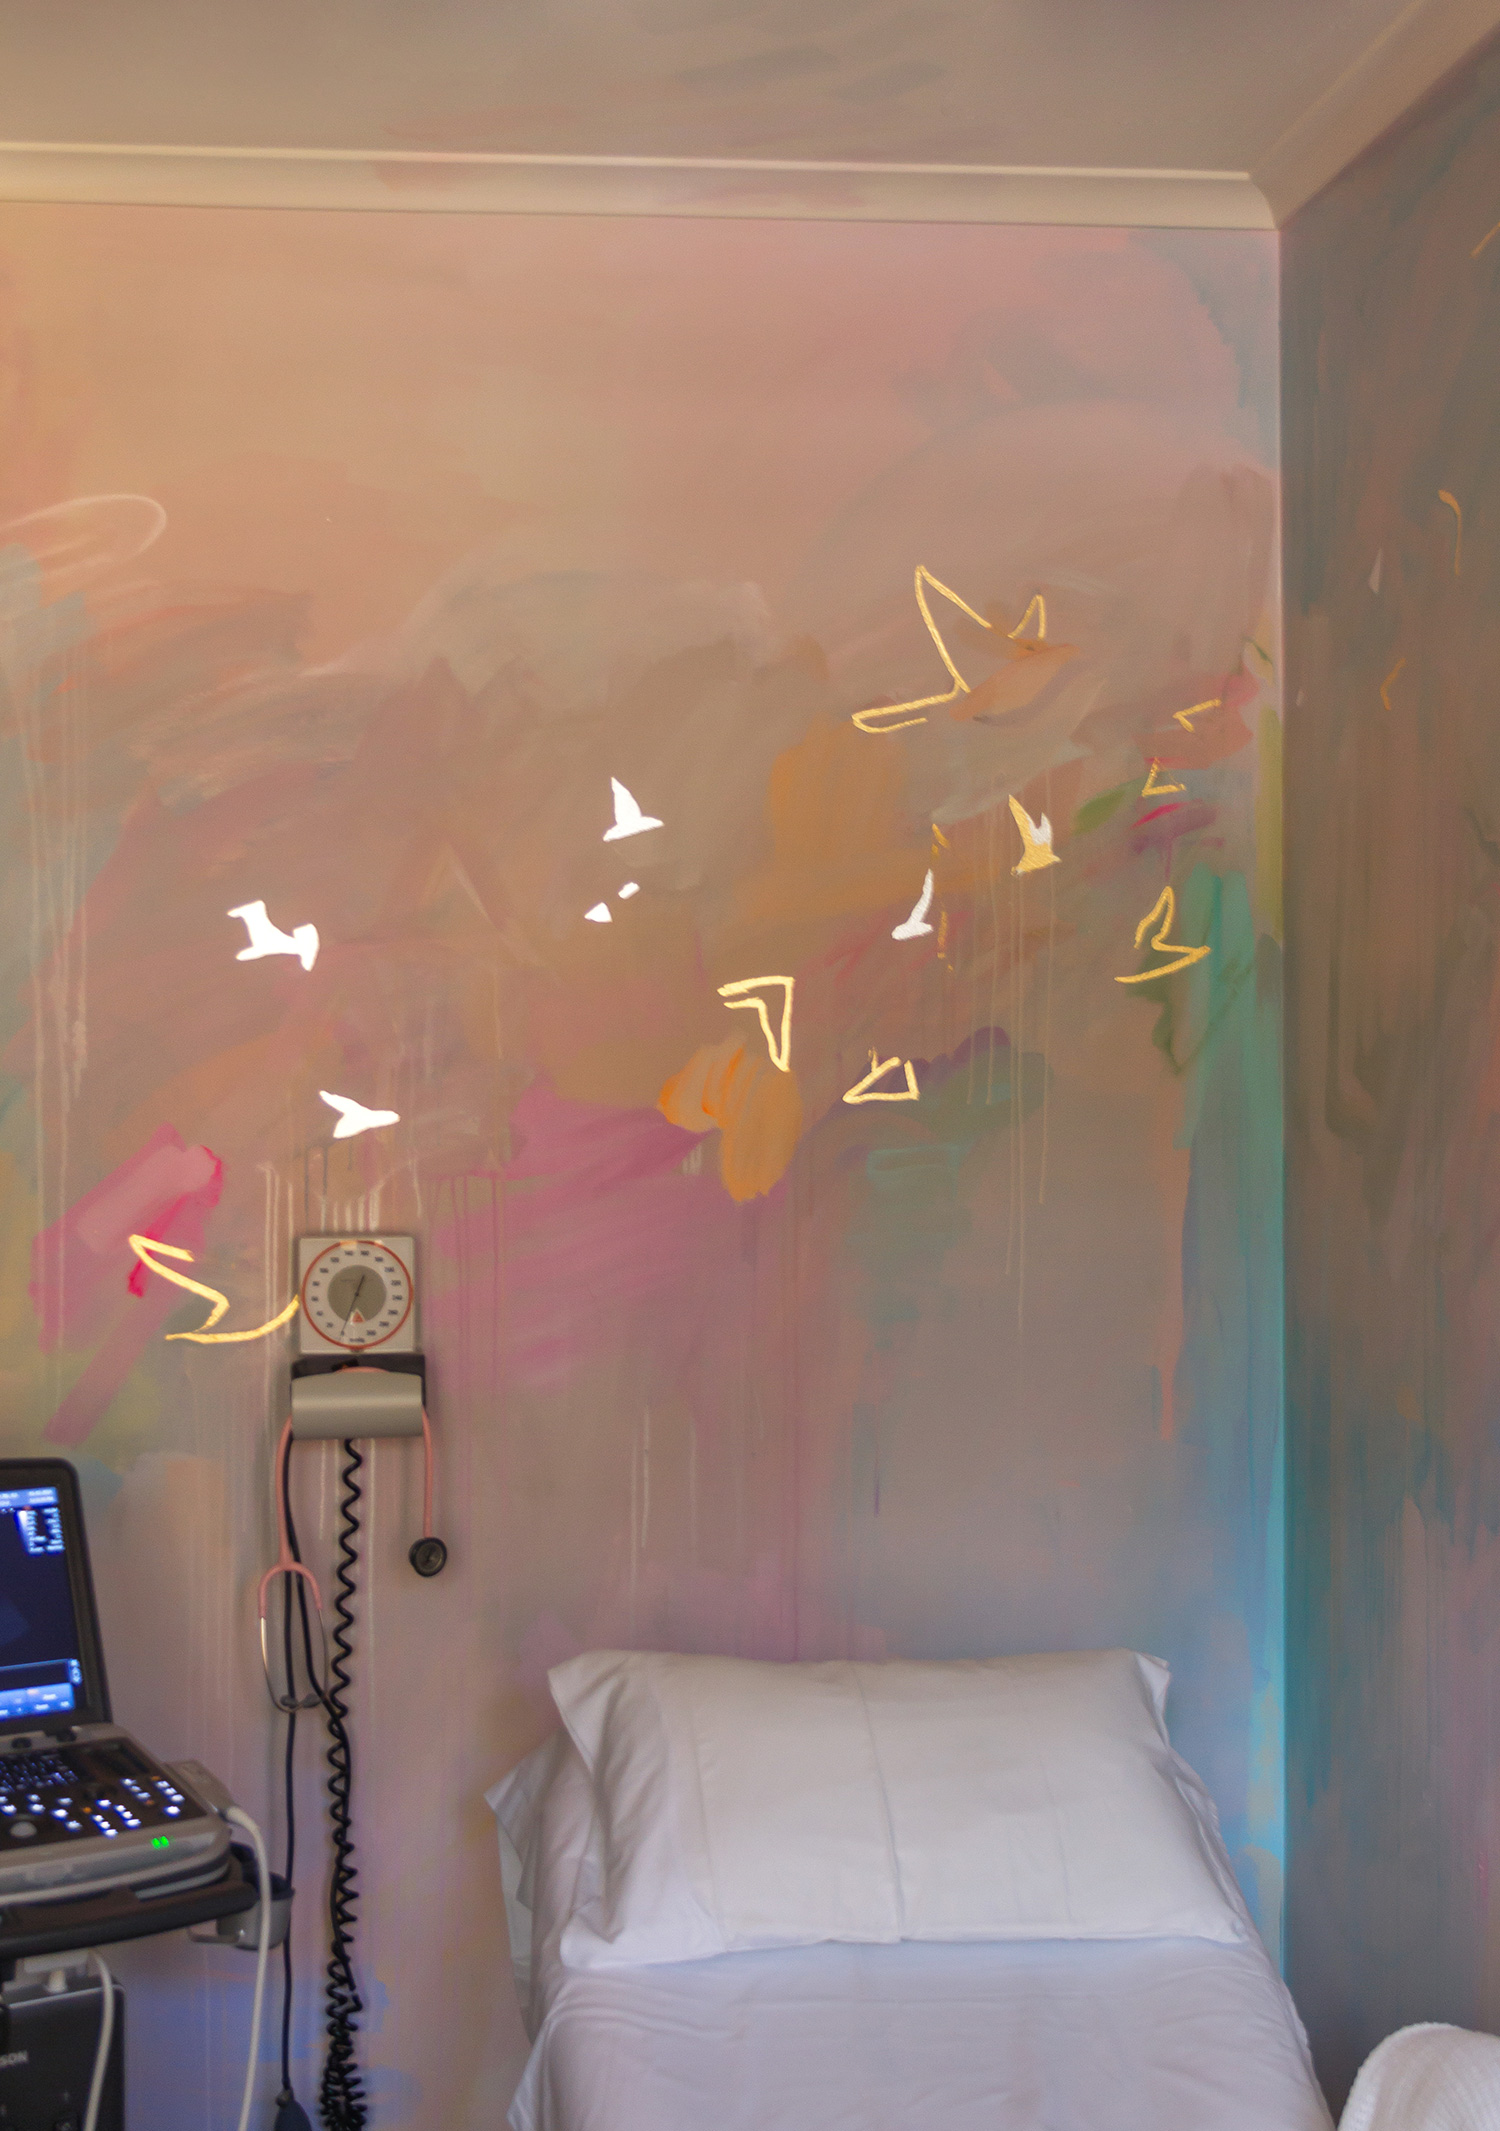 Pastel abstract mural painted in an OB/GYN office, featuring pink stethoscope and medical equipment. Room has a soft pink glow, gold and silver gilded birds and geometric shapes fly across the wall.